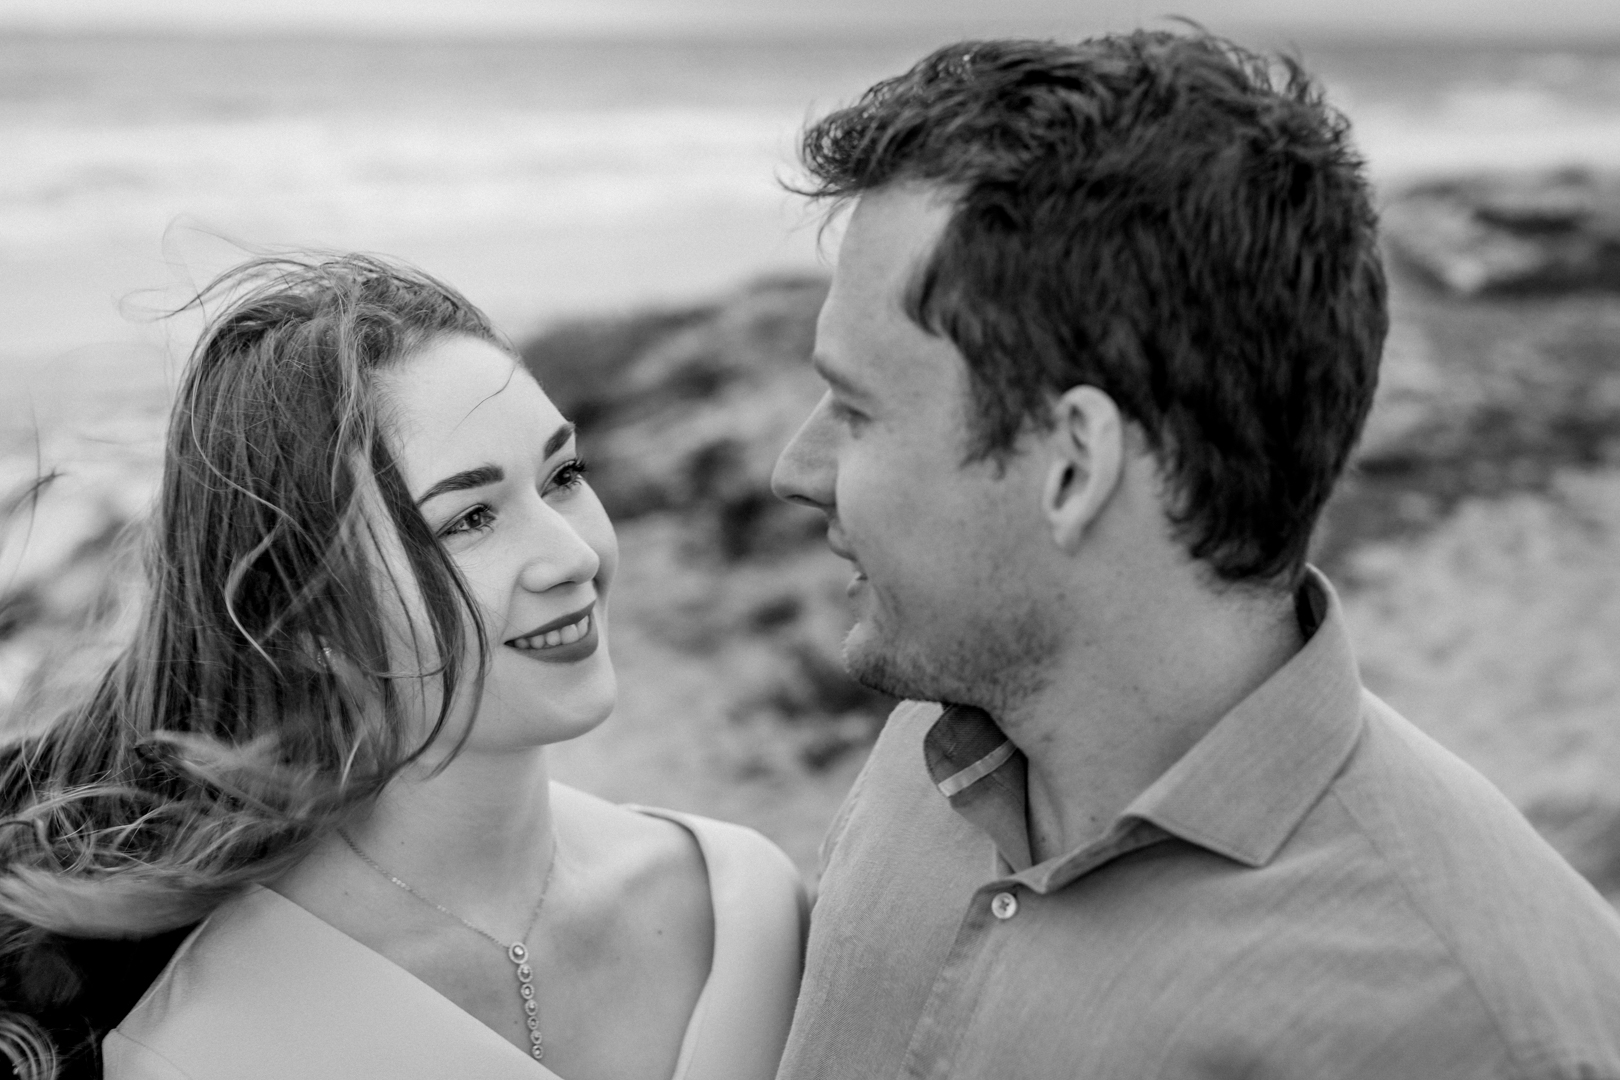 Jessica and Kyle - Cape Town Couples Beach_Seaside Photo session by Cape Image Co. (Small File)-4.jpg